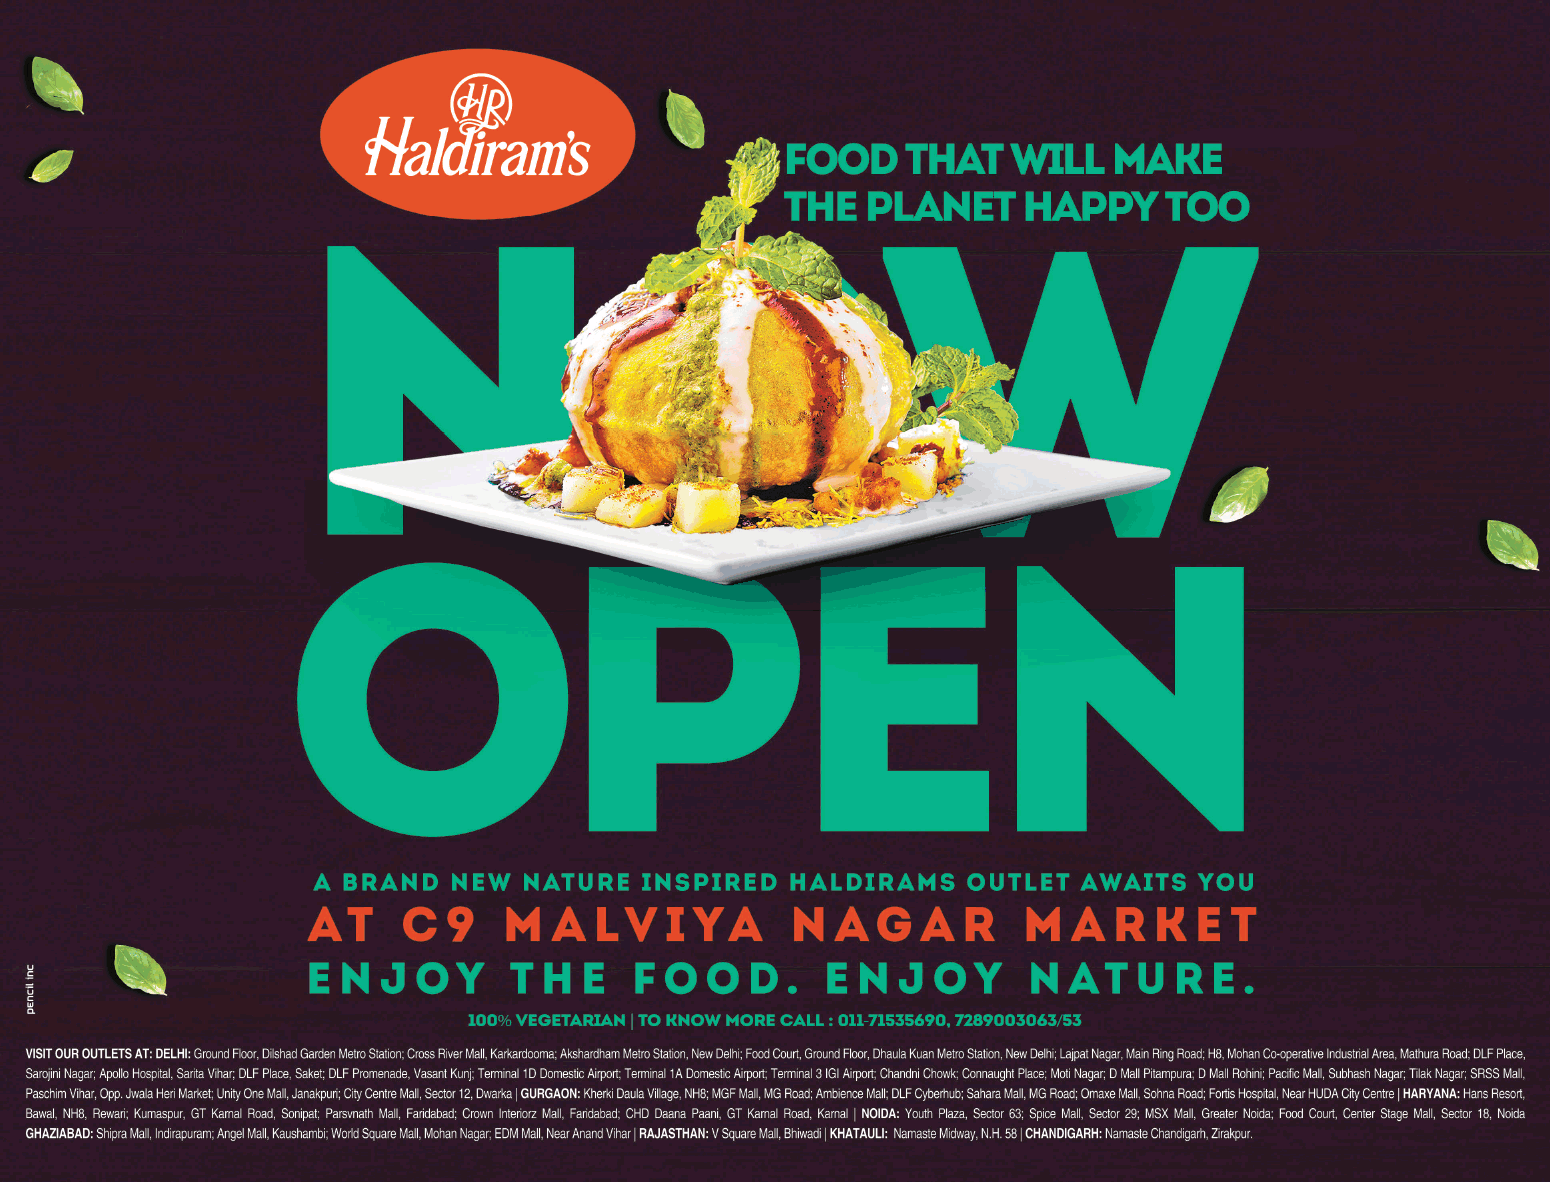 Haldirams Food That Will Make The Planet Happy Too Now Open Ad Delhi Times Check Out More Hotels Restaurants Advertiseme Food How To Make Hotel Restaurant